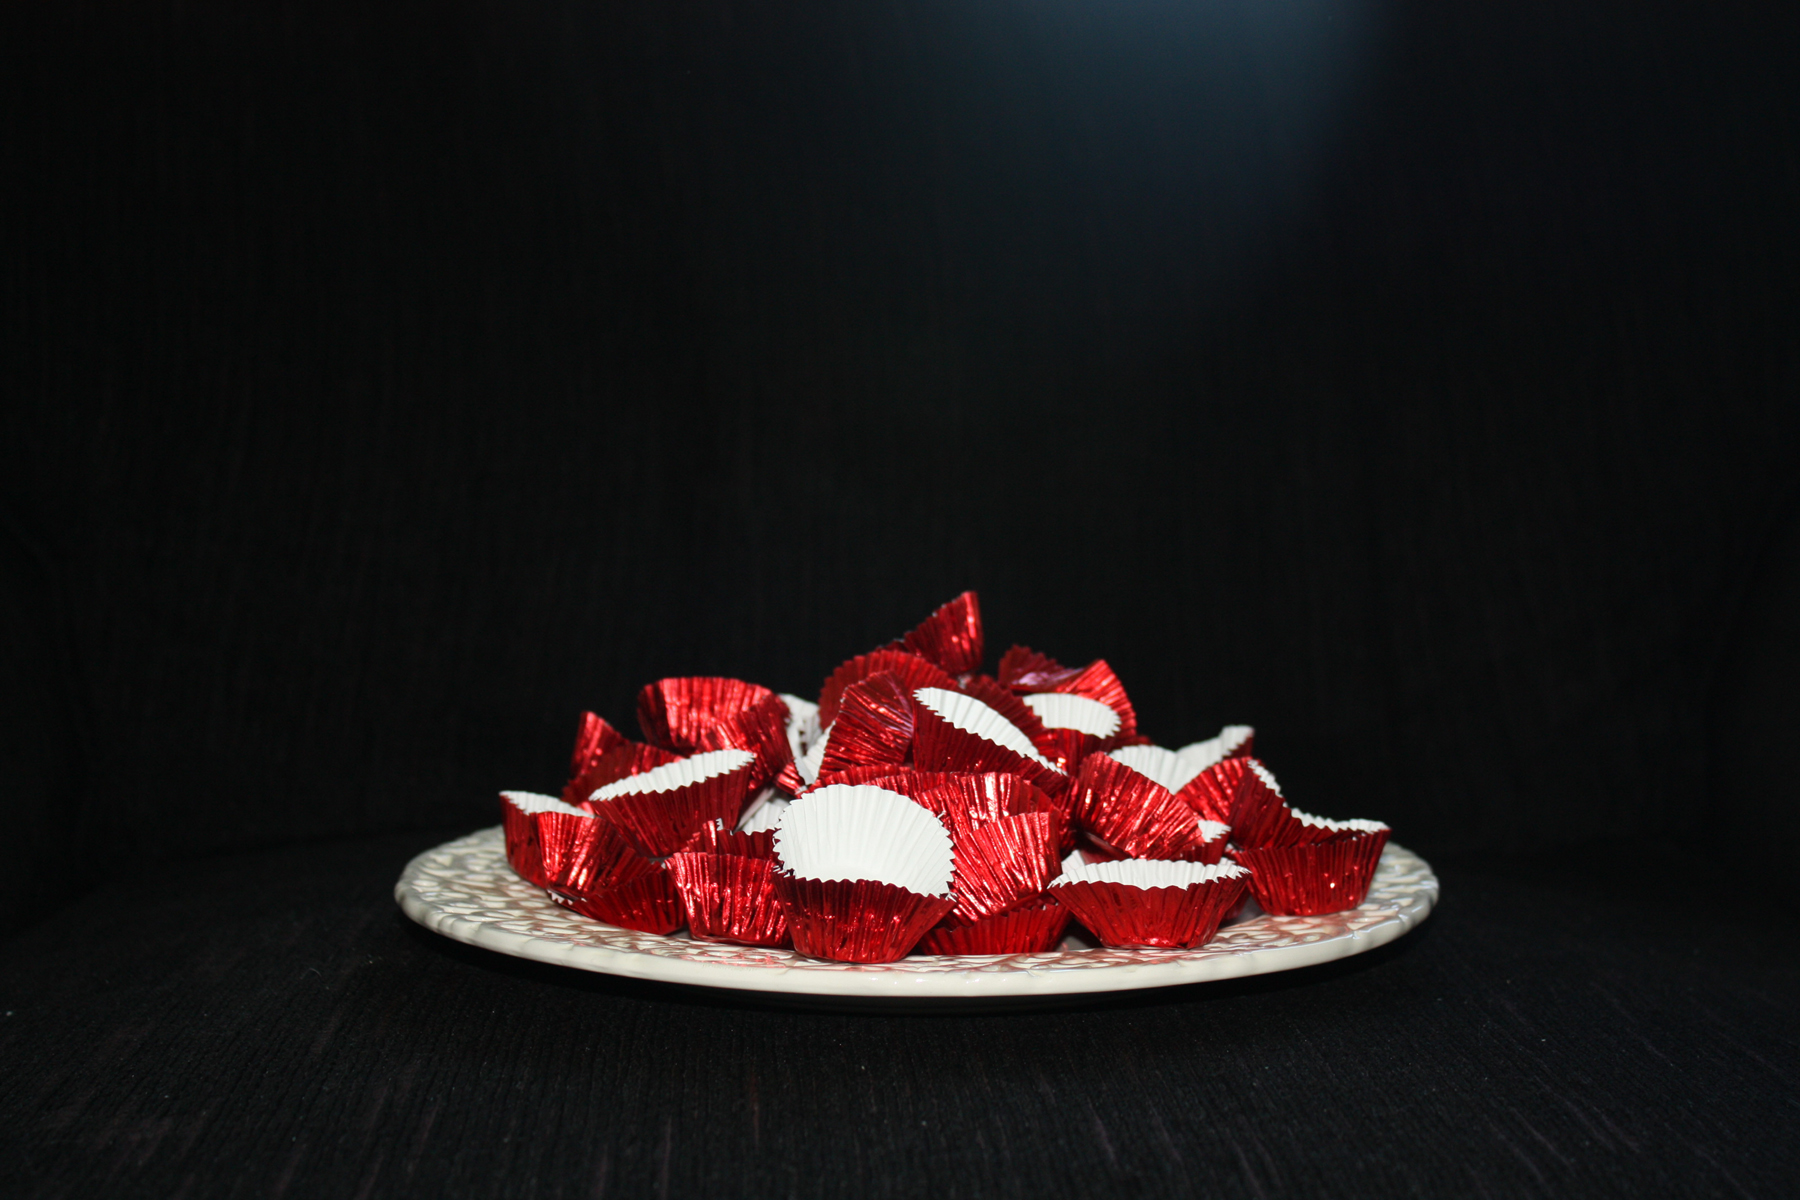 Empty Wrappers